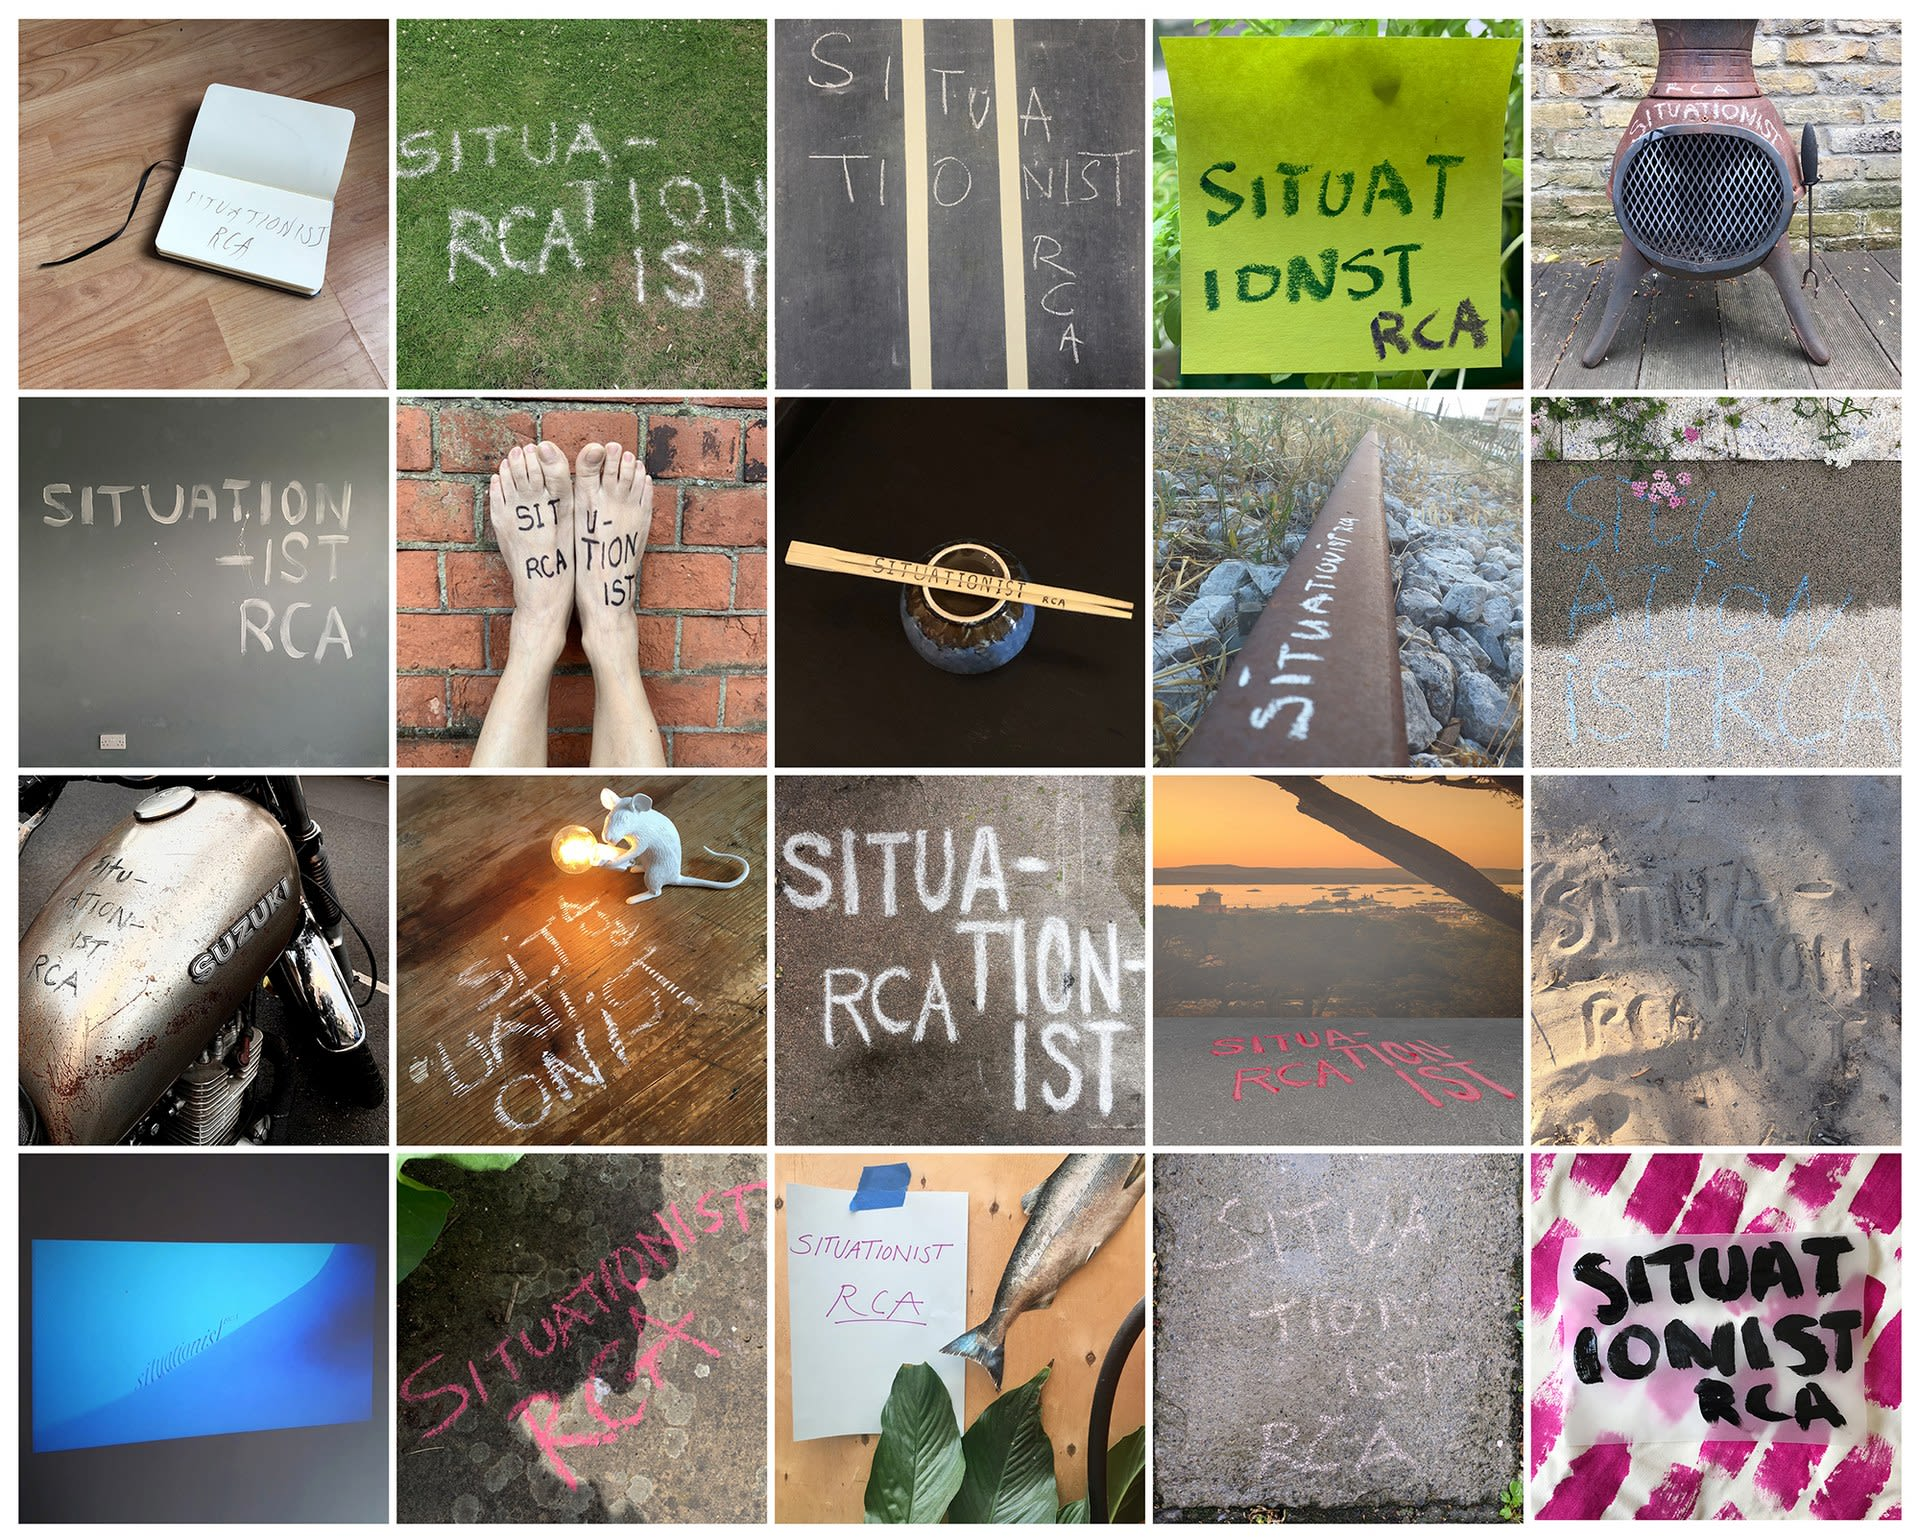 Situationist RCA Live Events